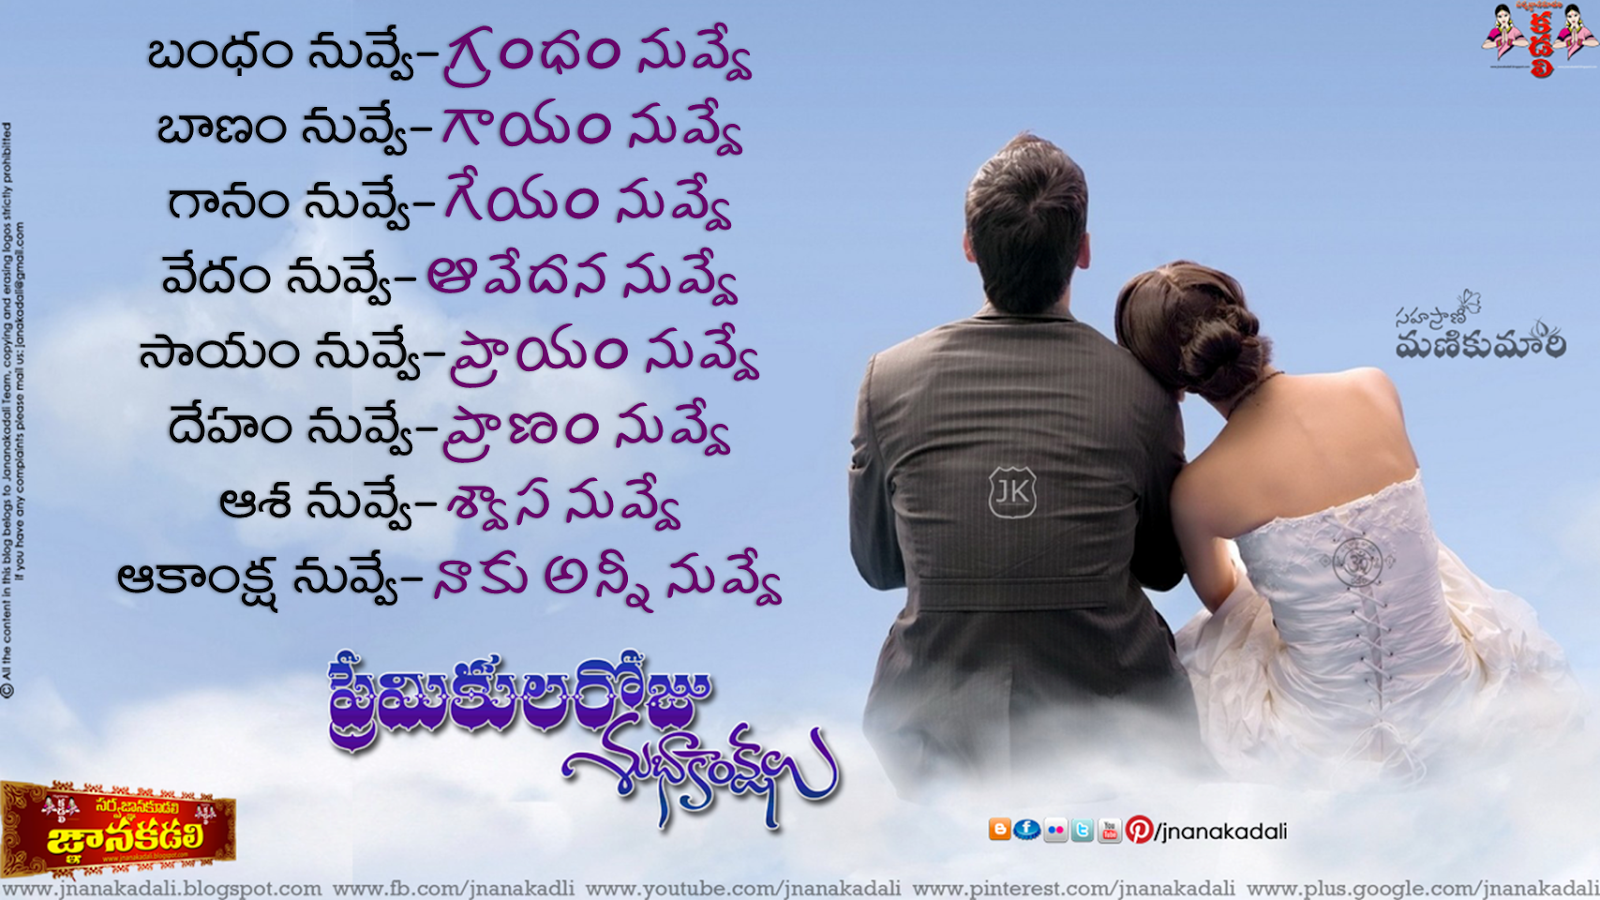 I Love Quotes In Telugu : -Telugu-Prema -Kavithalu-Telugu-Love-Quotations-Telugu-HQ-Love-Quotes ...